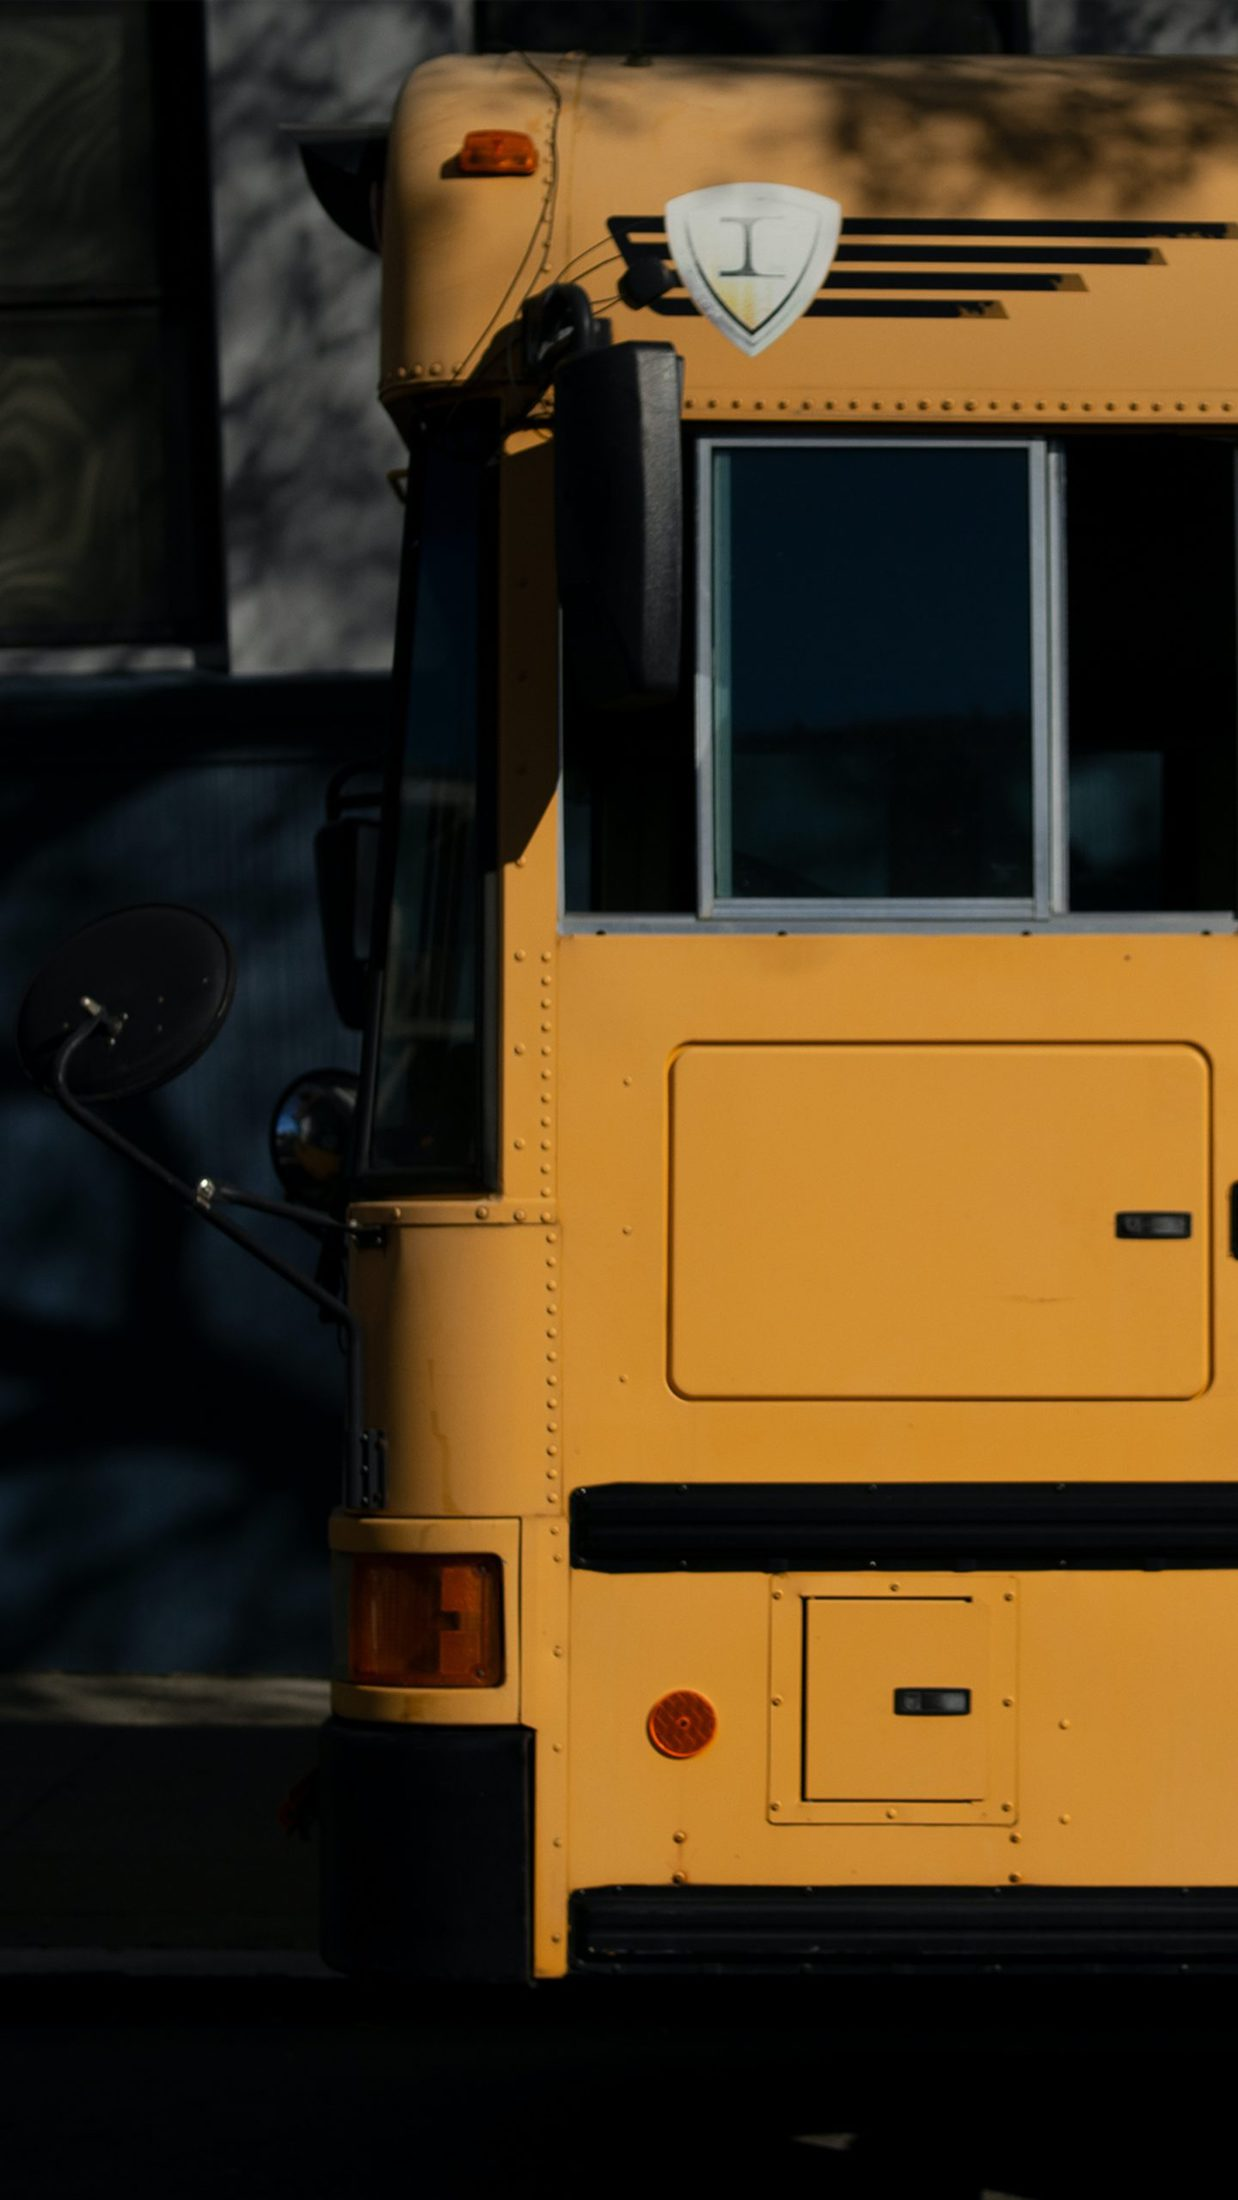 yellow bus in close up photography